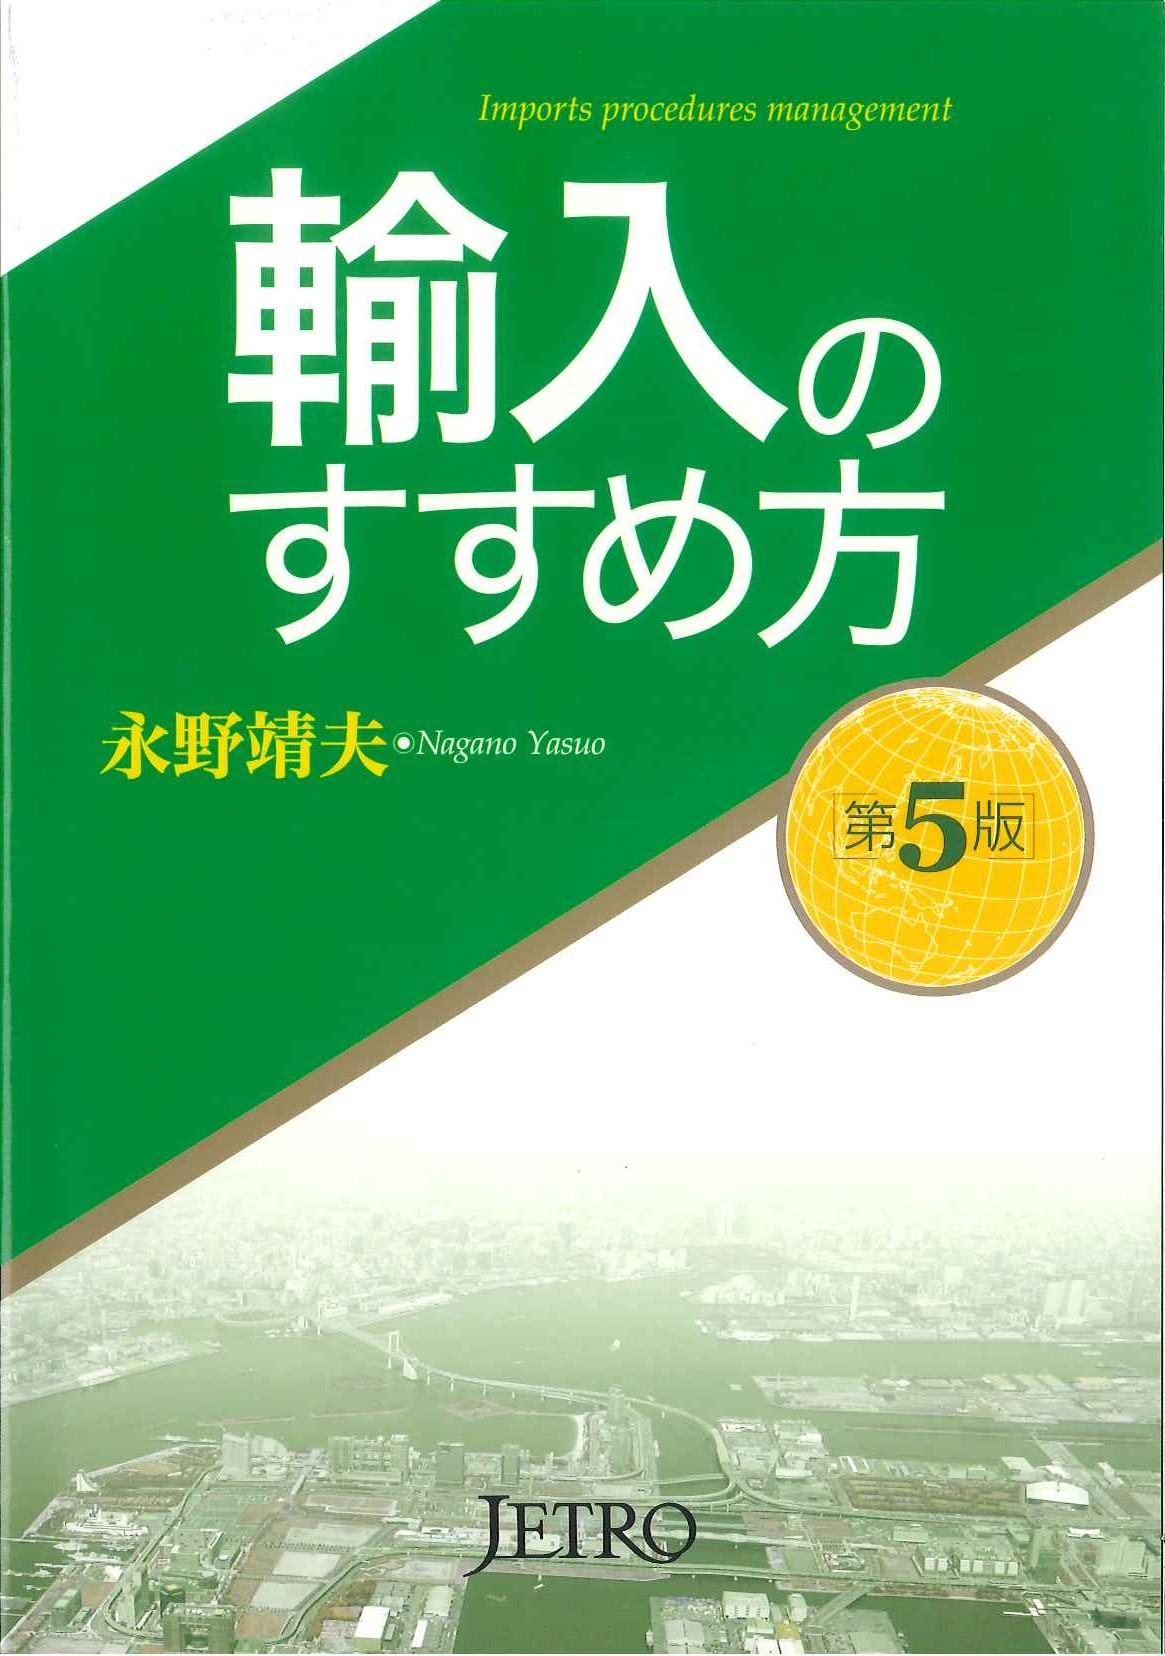 輸入のすすめ方=Imports procedures management